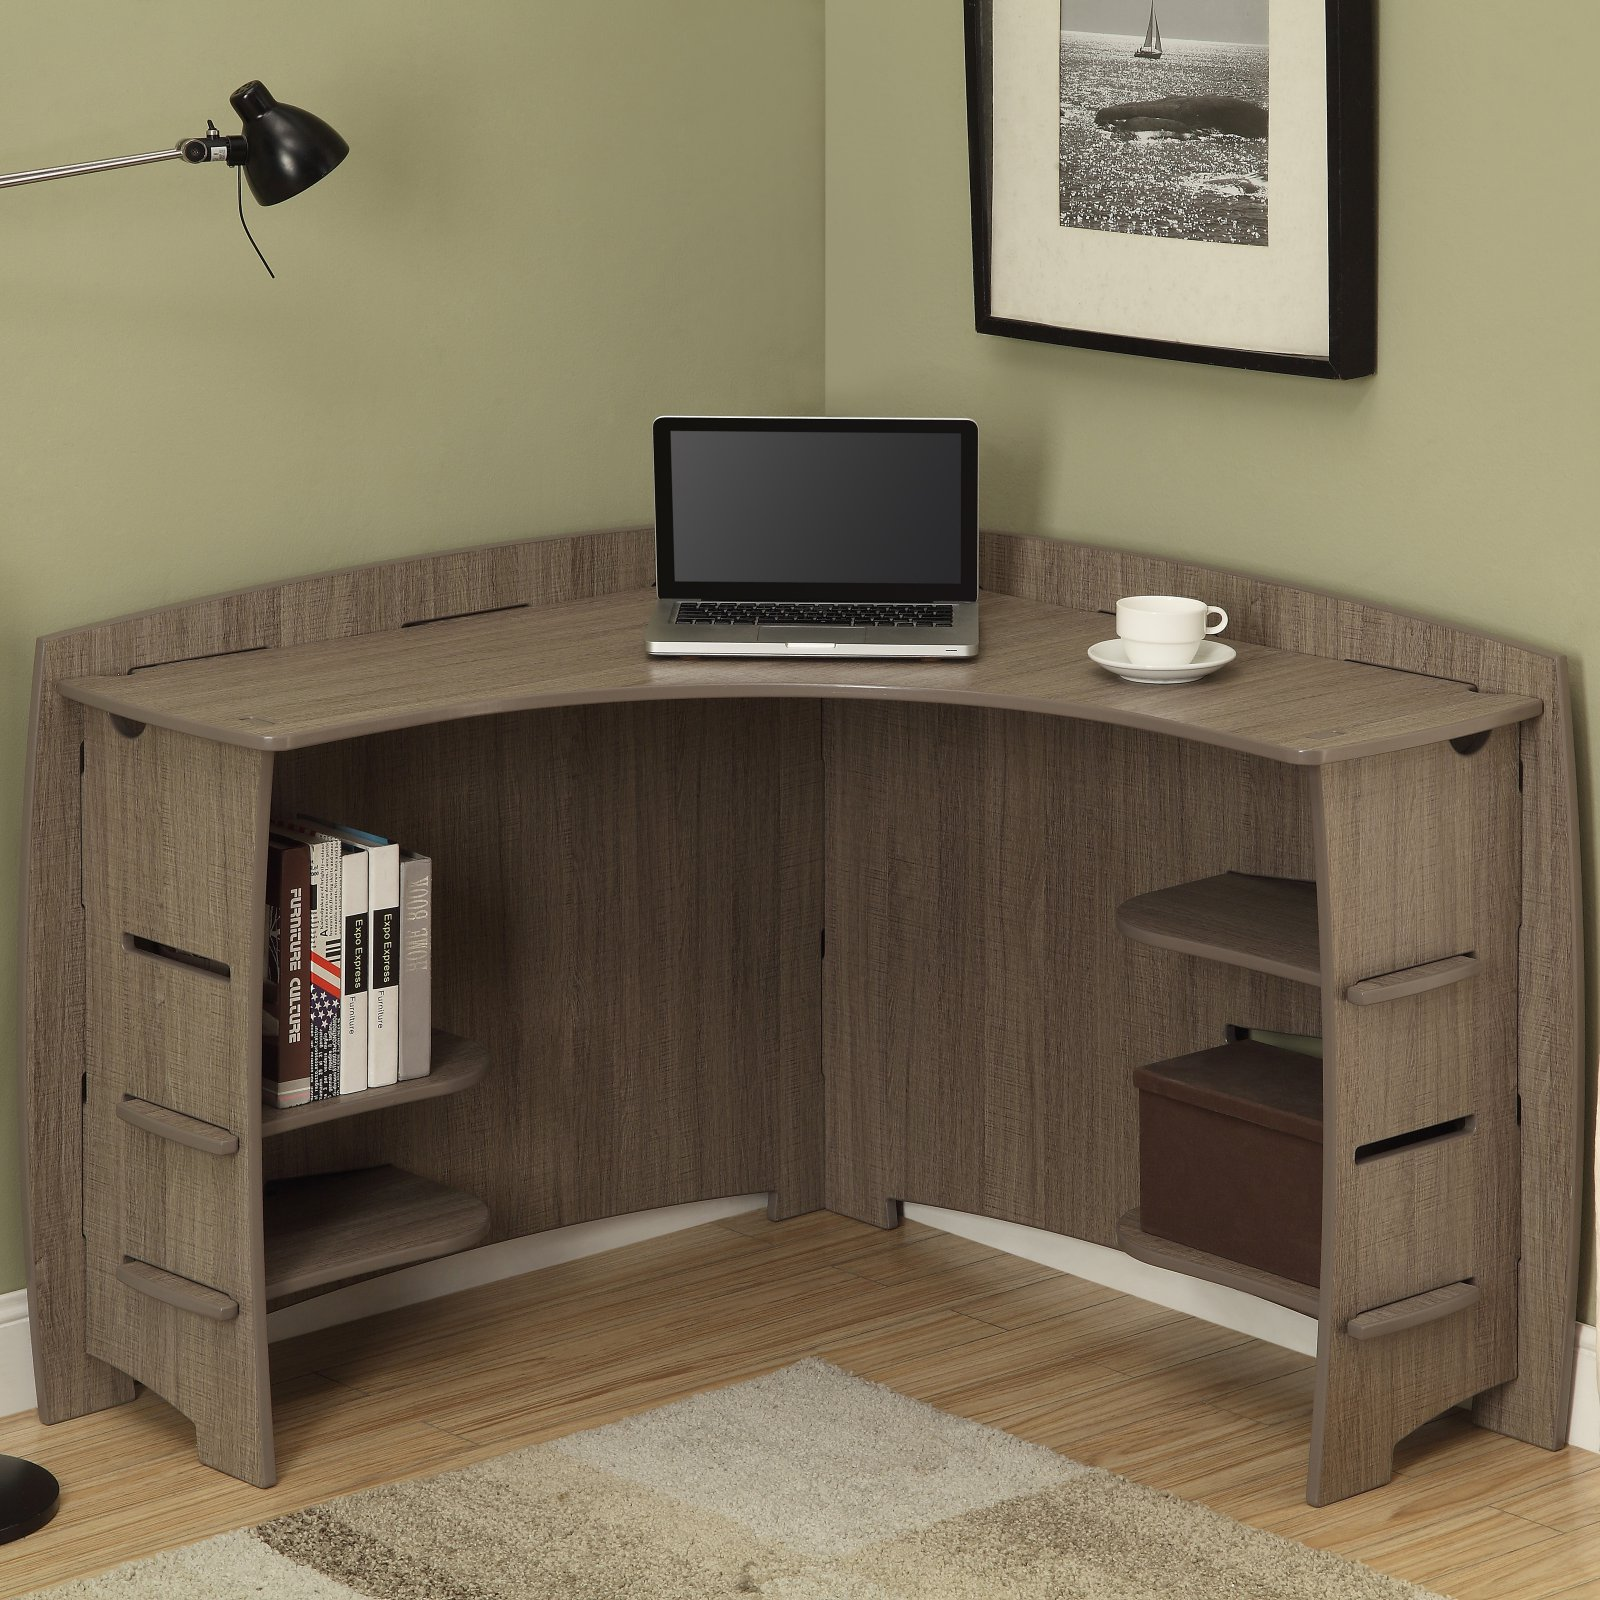 Legare Furniture, No Tools Assembly 47 Inch By 47 Inch Corner Desk,